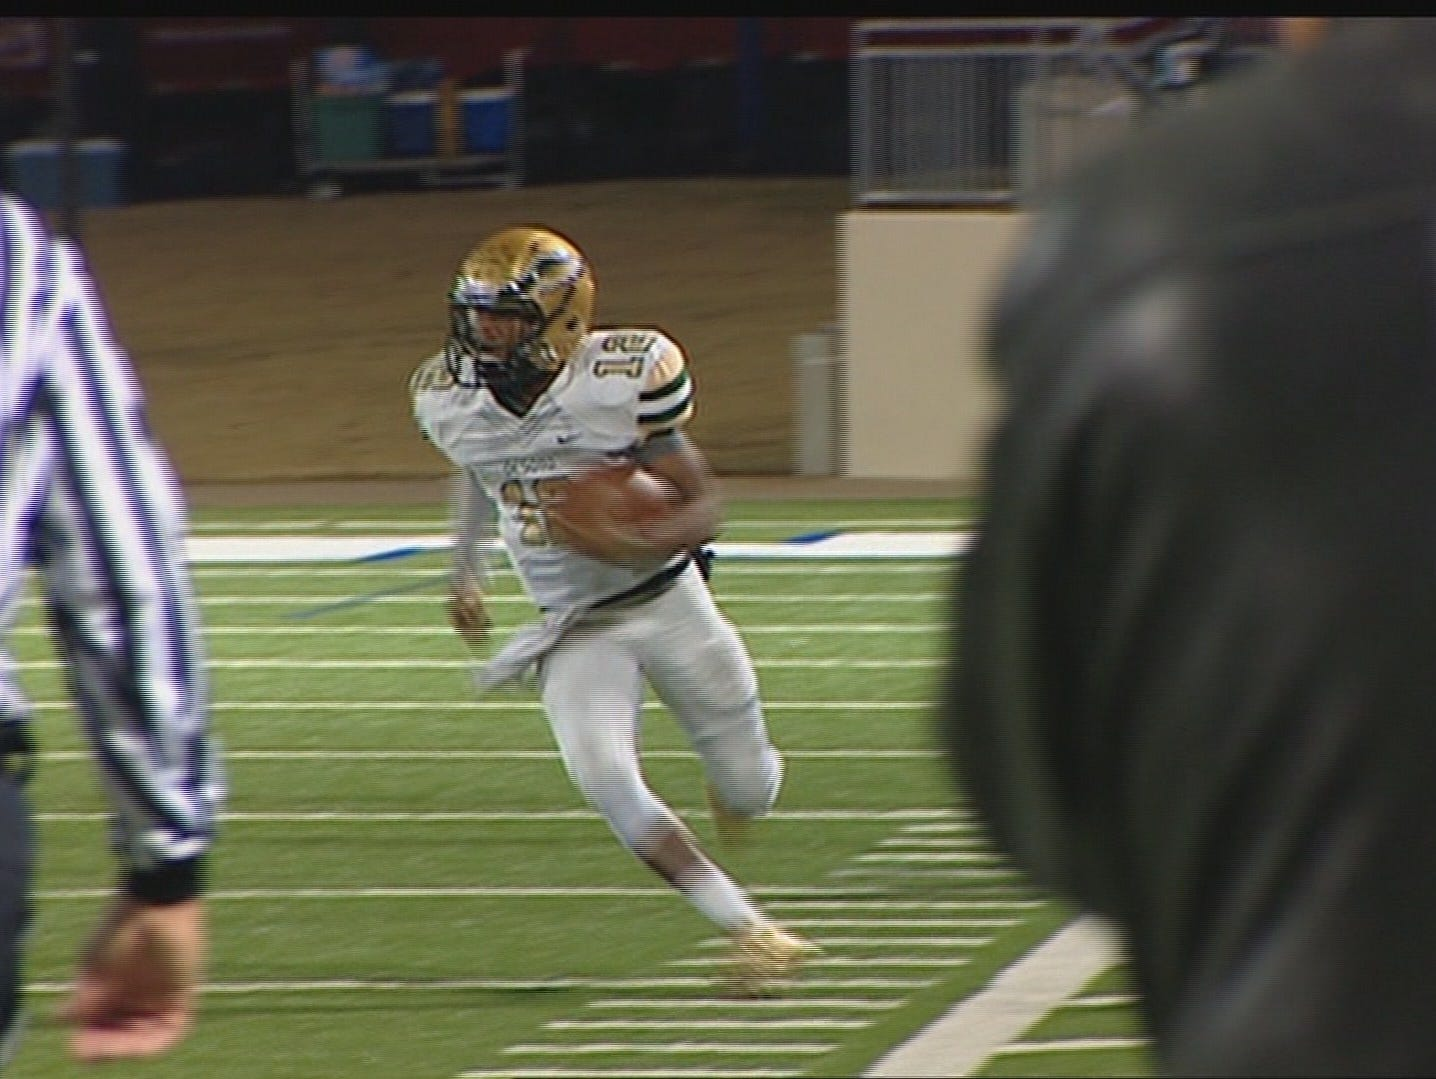 At the high-school level, the football community in DeSoto was wondering how their quarterback, Tristan Wallace, would replace the exciting and successful Des White.